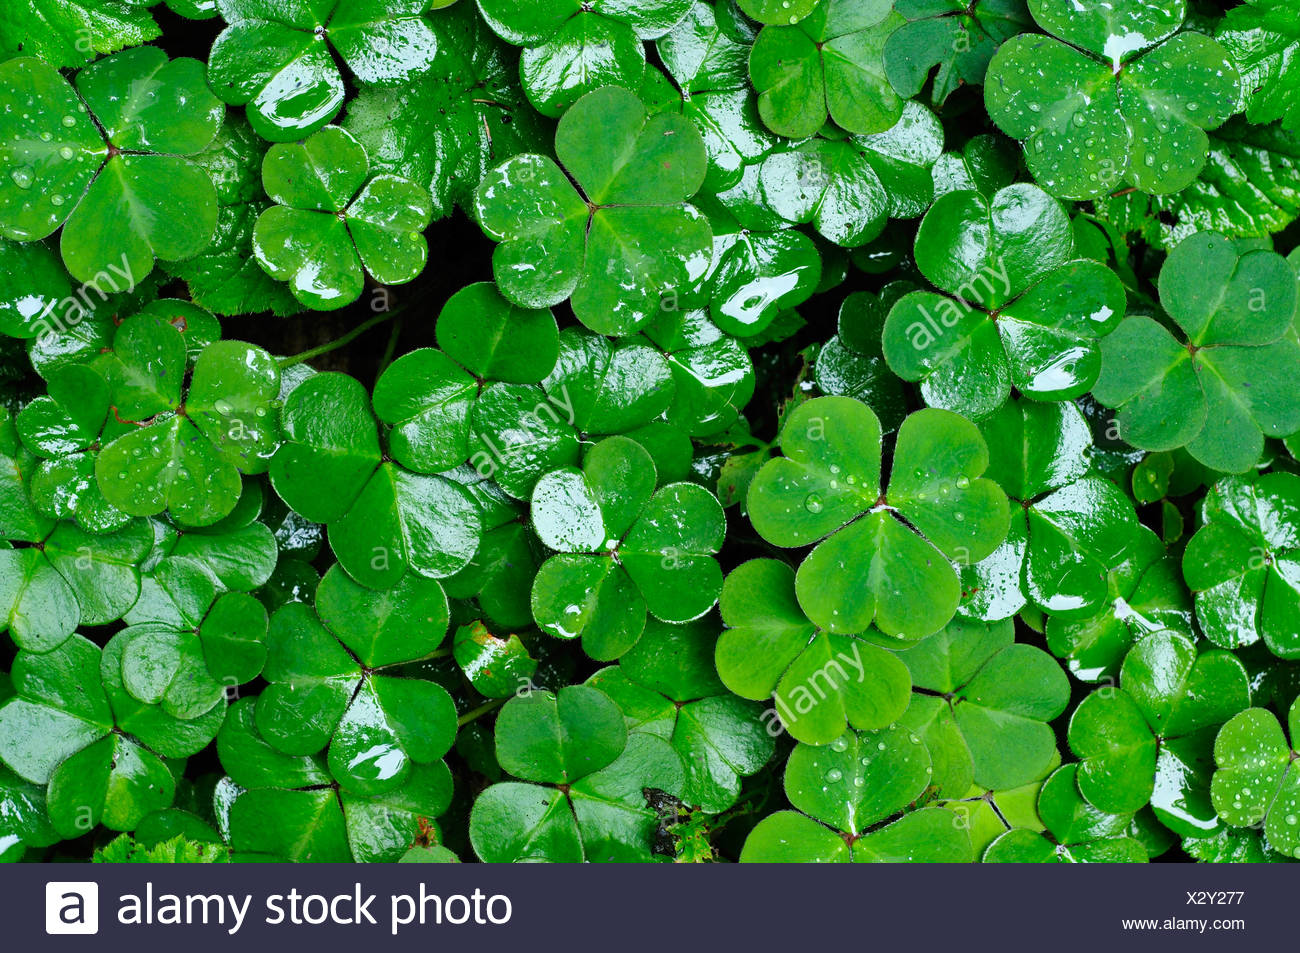 Clover leaves Stock Photo